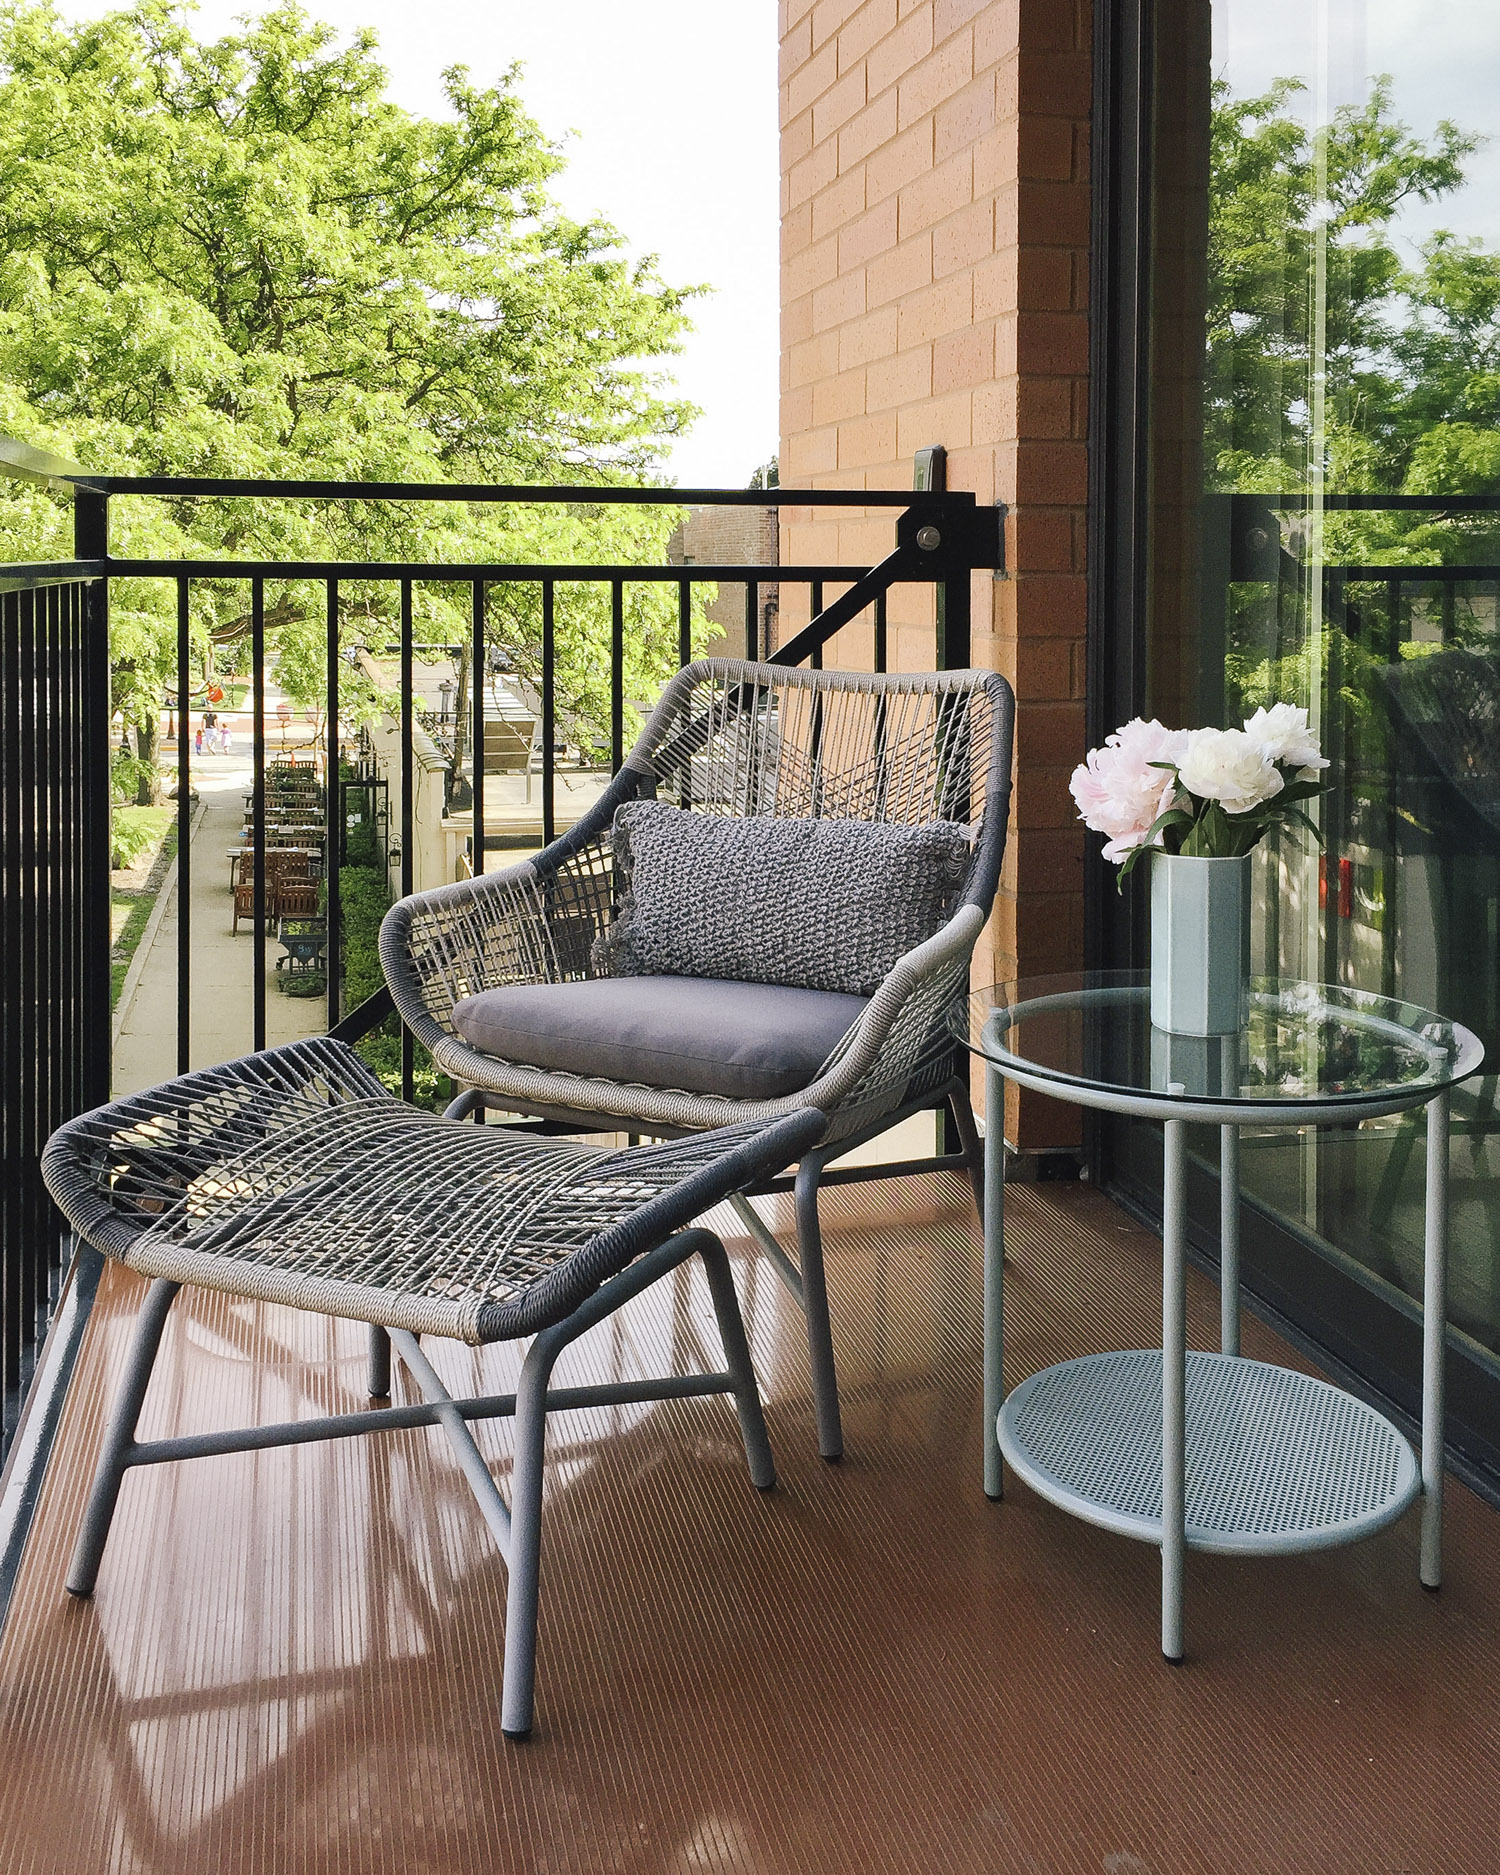 west elm everett chair antique metal patio chairs a fresh condo design for an active family front 43 main